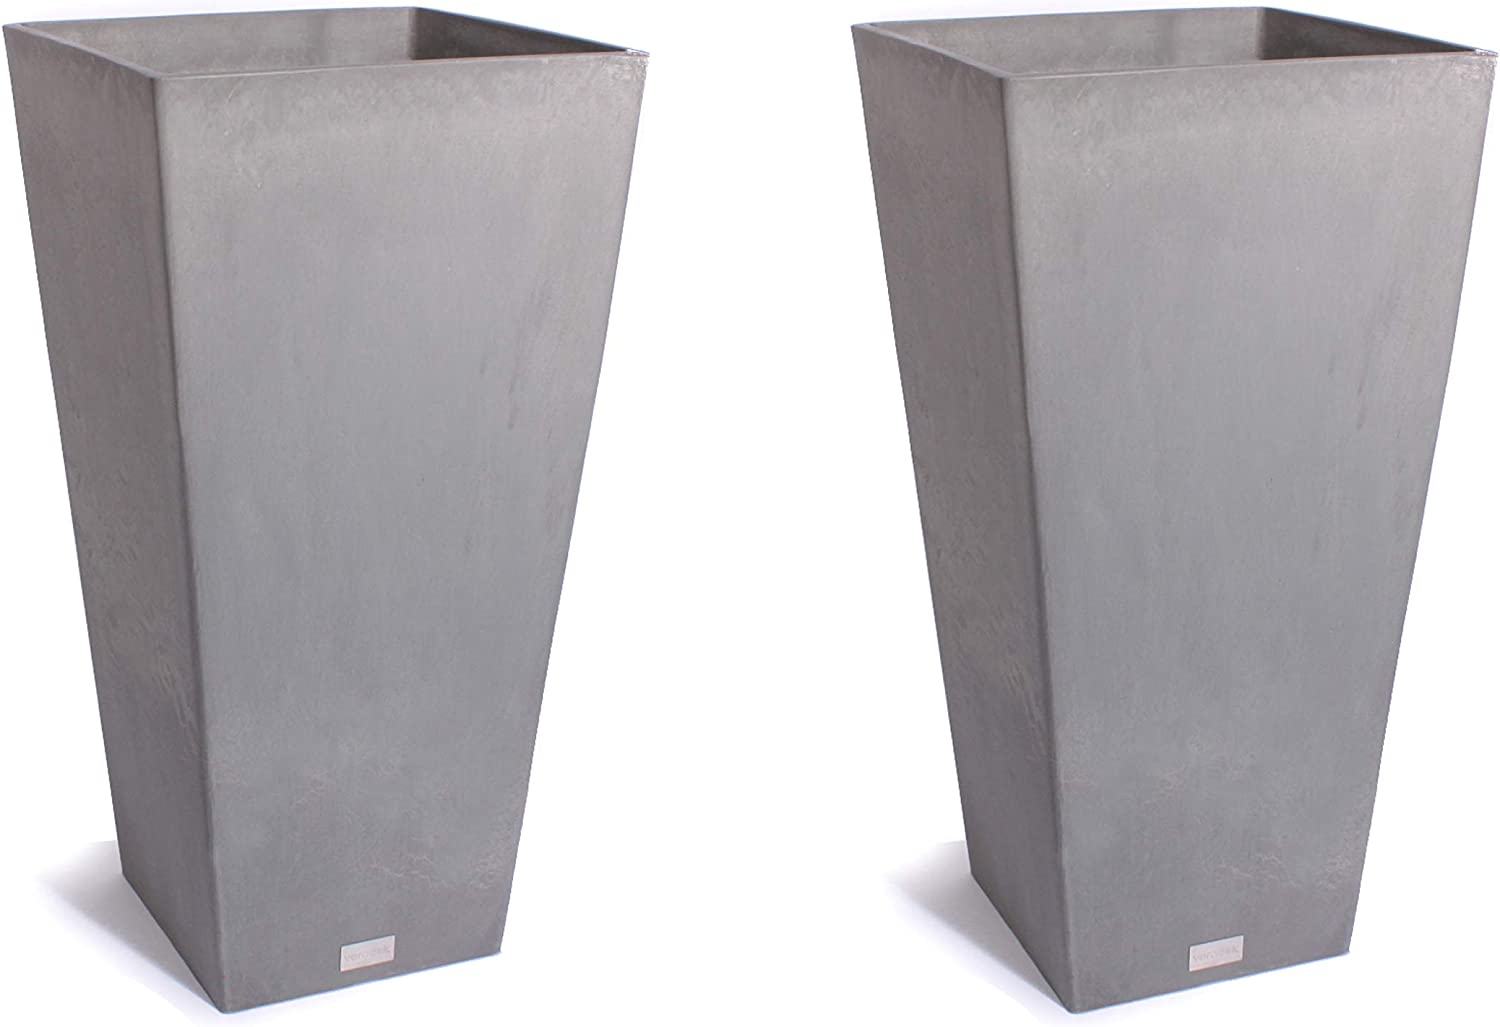 Veradek Midland Tall Square Planter – Charcoal- 28 in.-2 Pack